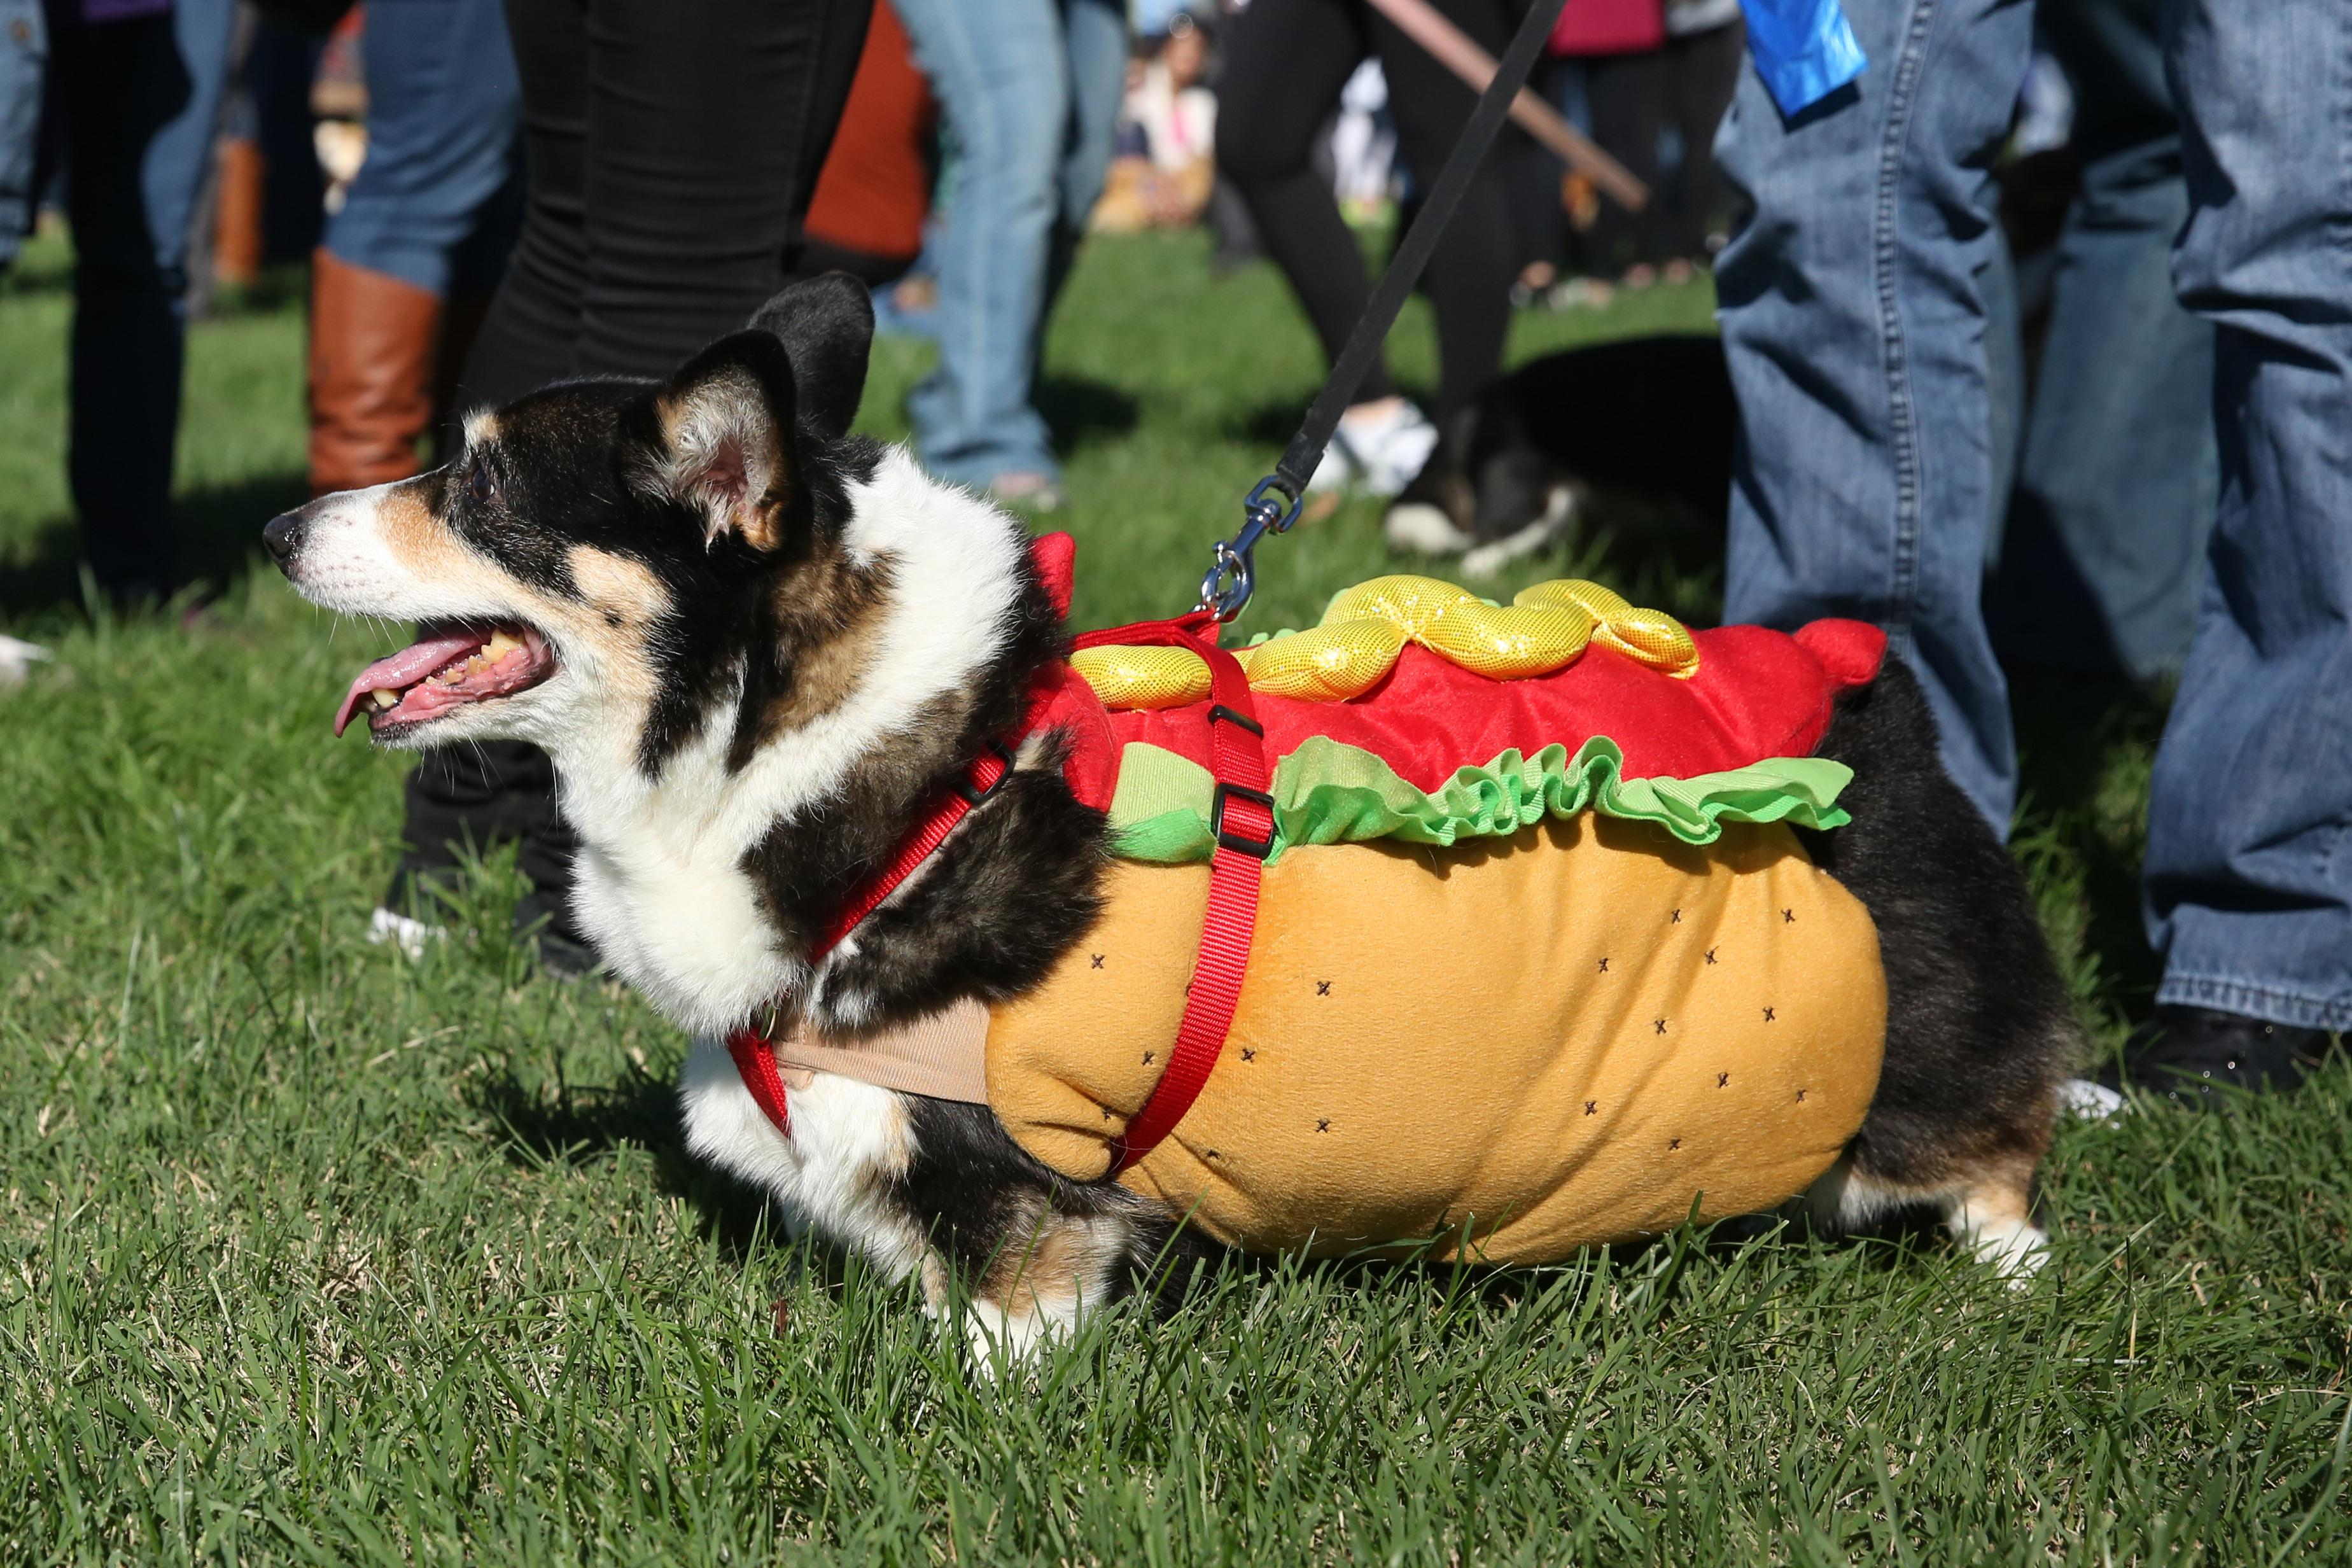 Hot dog!{ }(Amanda Andrade-Rhoades/DC Refined)